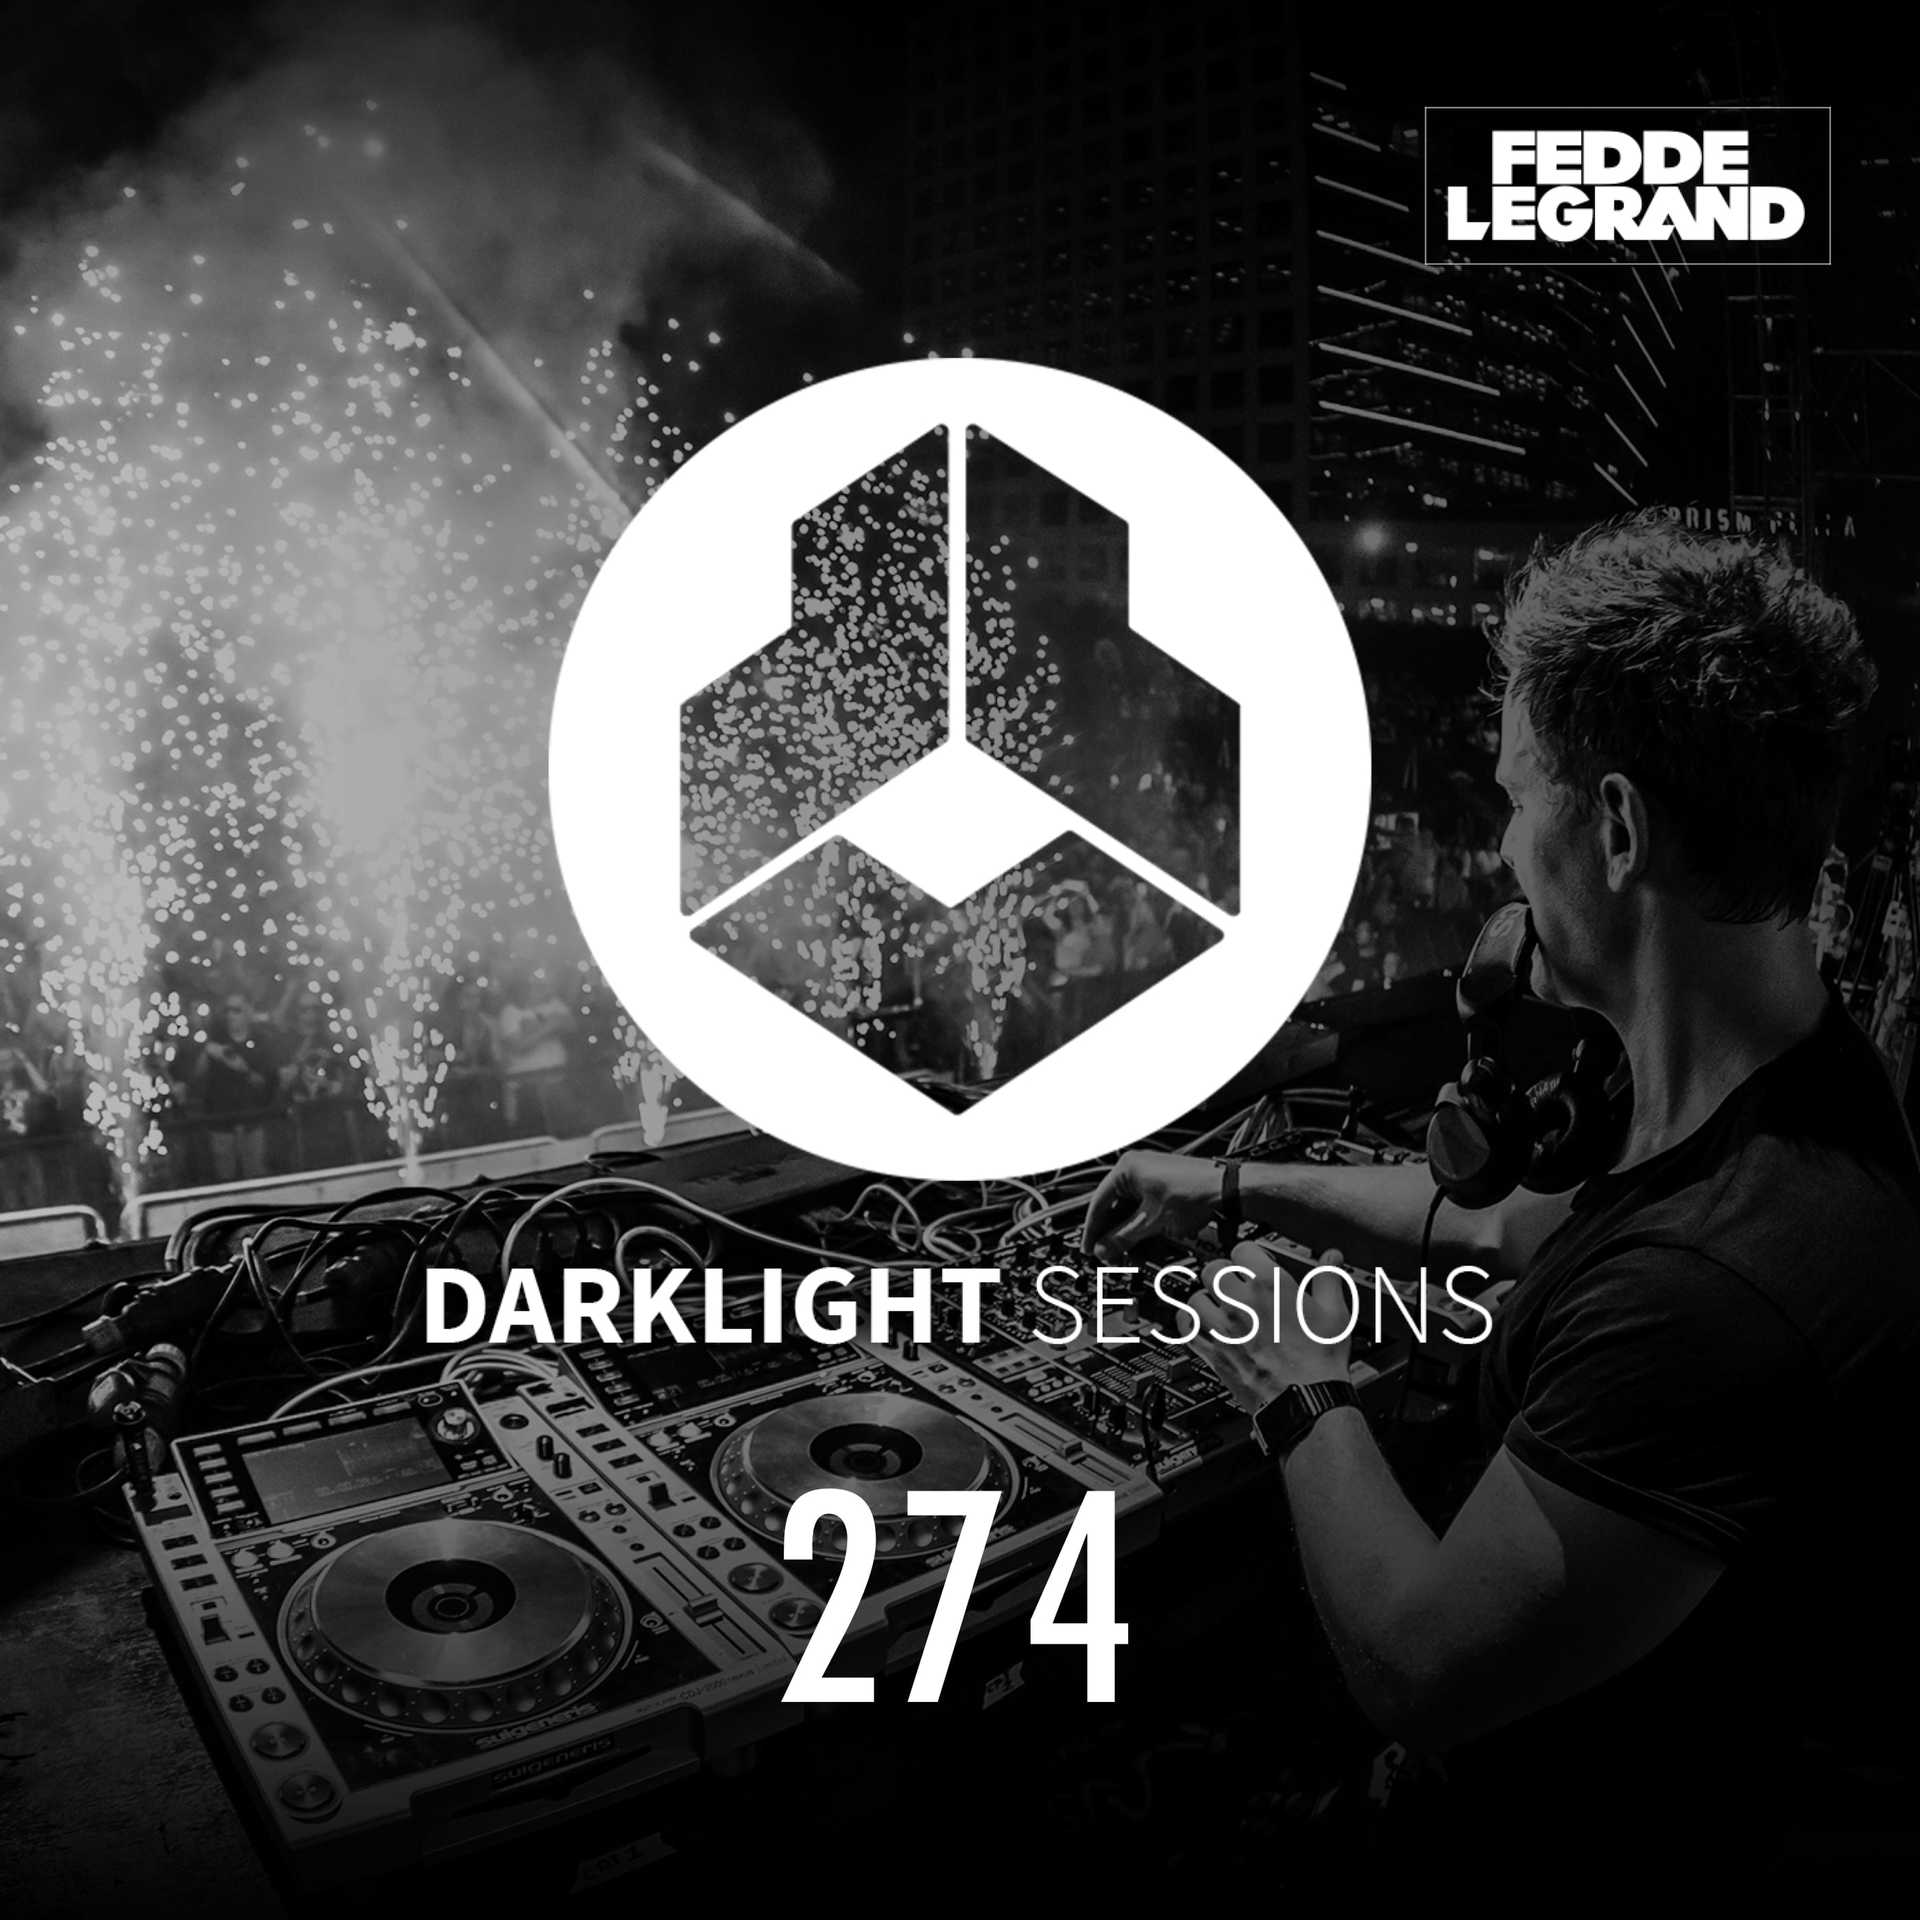 Darklight Sessions 274